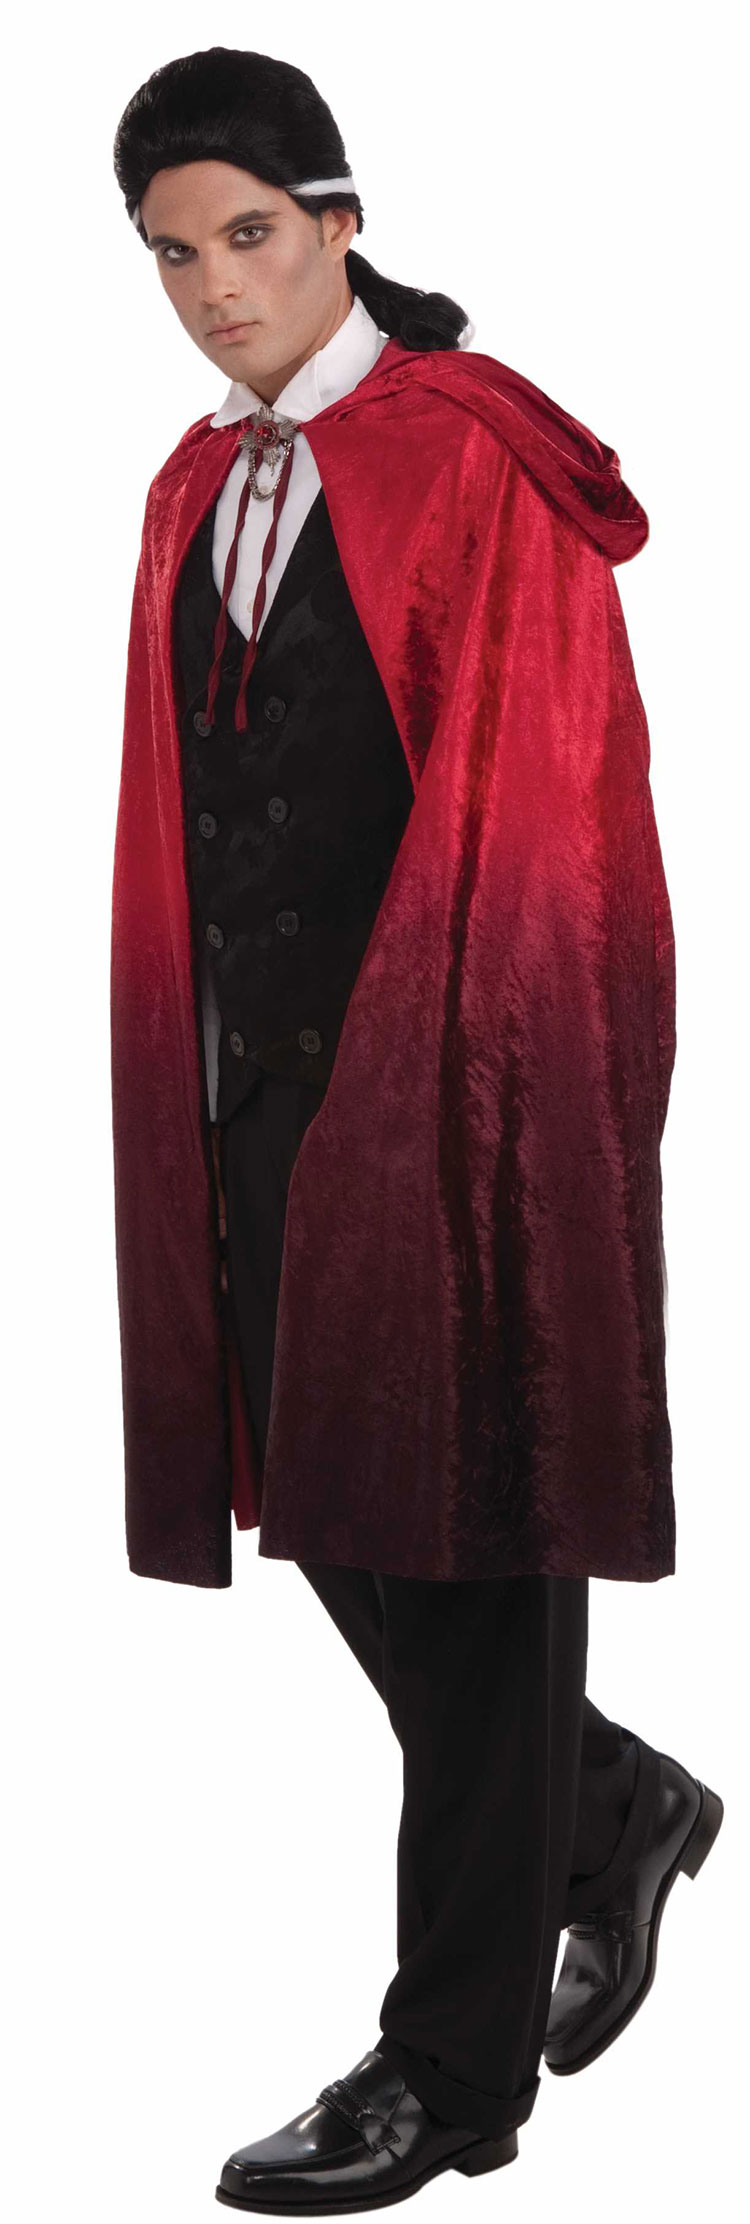 45 Red Faded Vampire Cape